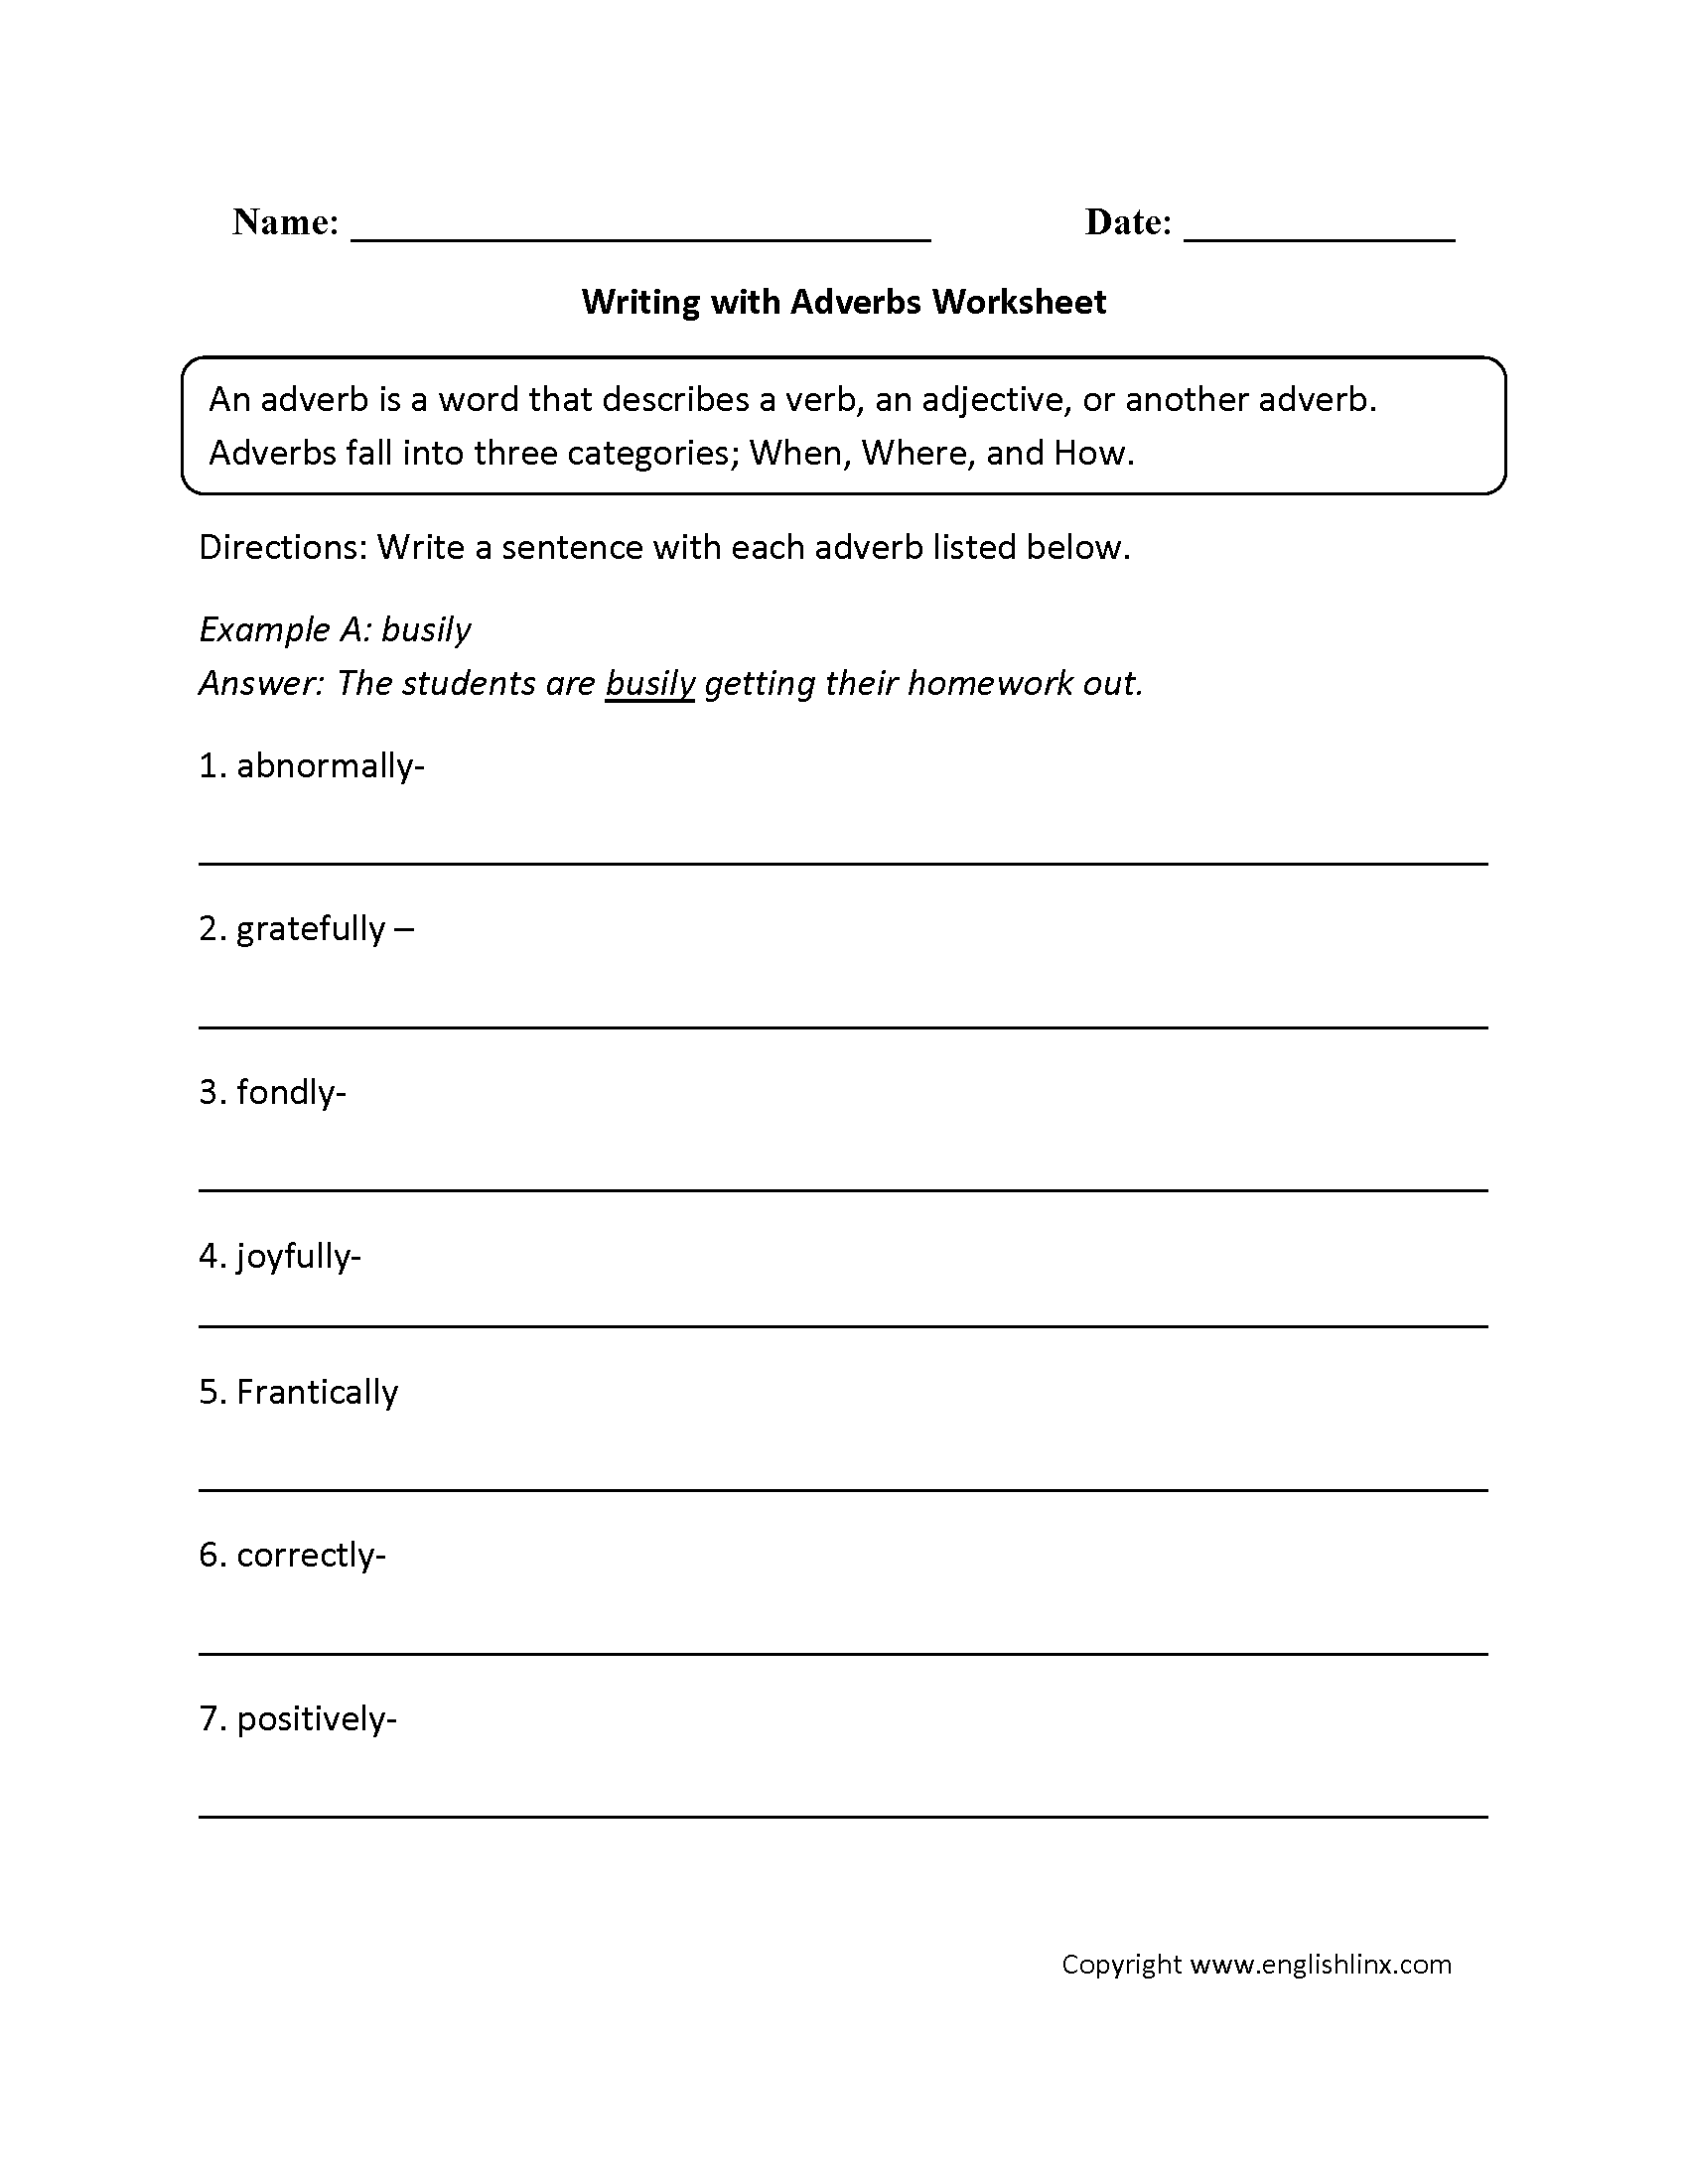 Worksheet Adverbs For Grade 5 adverbs worksheets regular worksheet